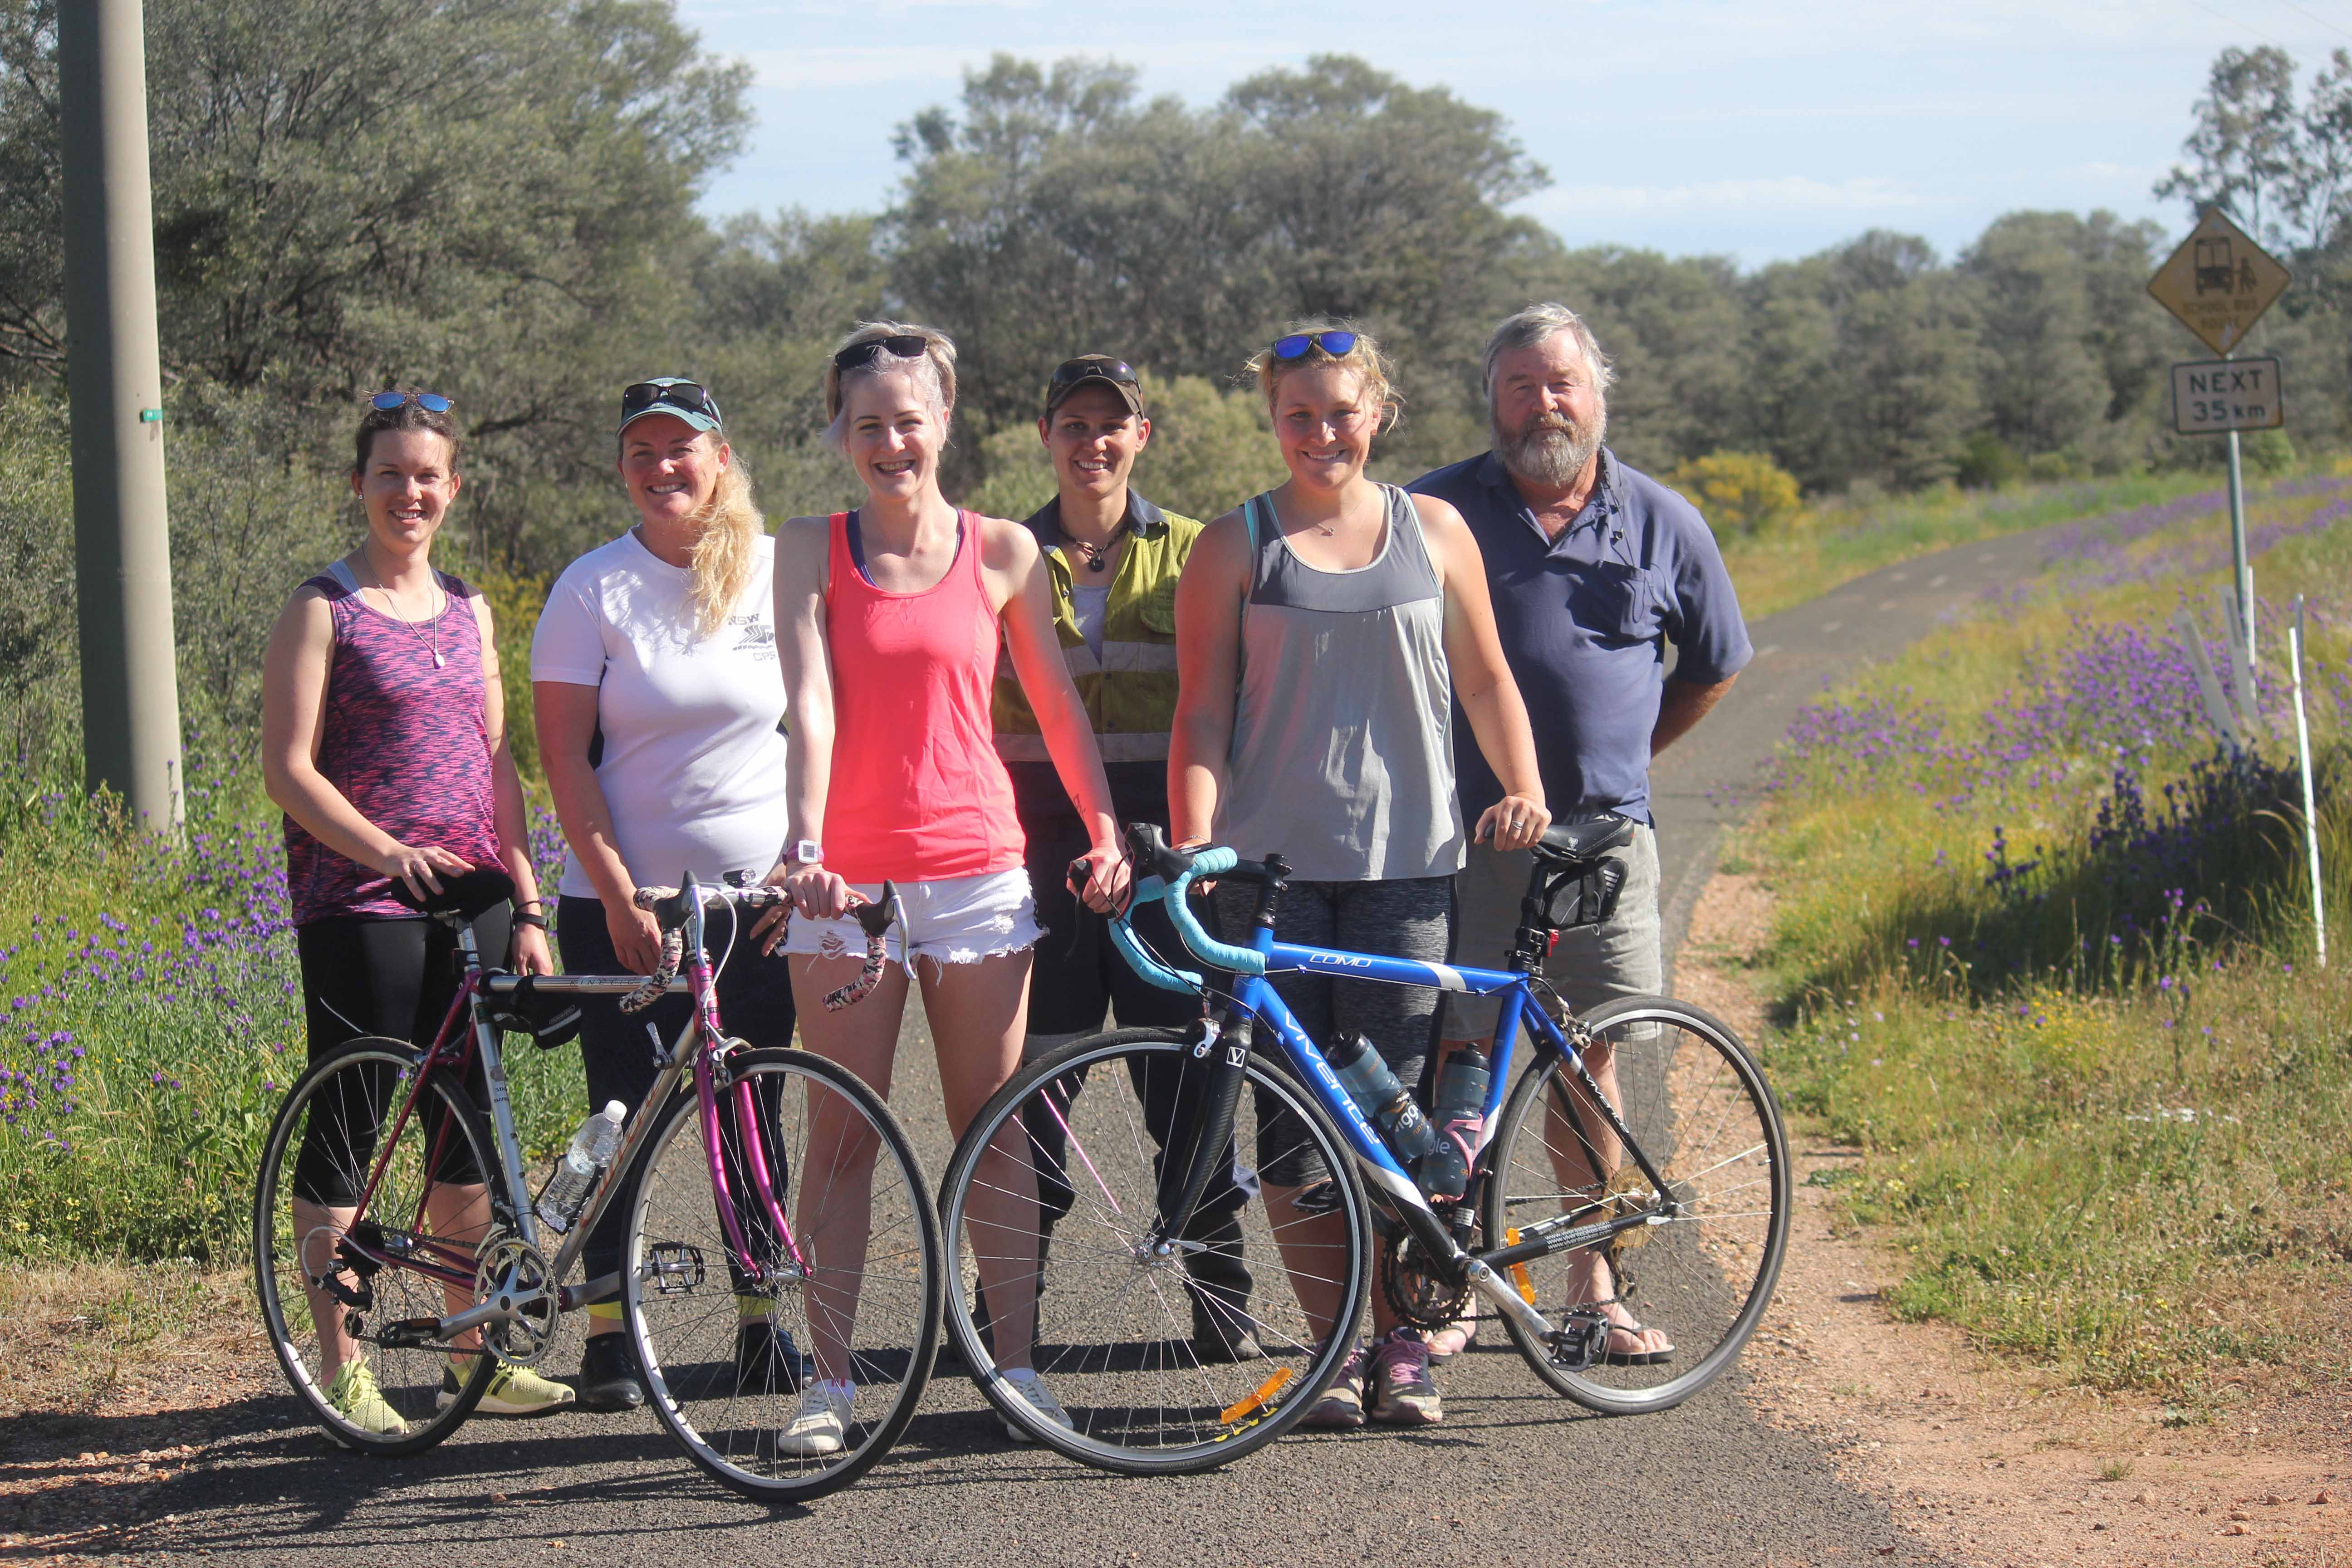 Some of The Cobar Gang riding the Great Cycle Challenge, Lyndsay Klopper, Kylie Lynch, Alex Eves, Shakira Colling, Samantha Dixon and Colin Eves.  Photo contributed